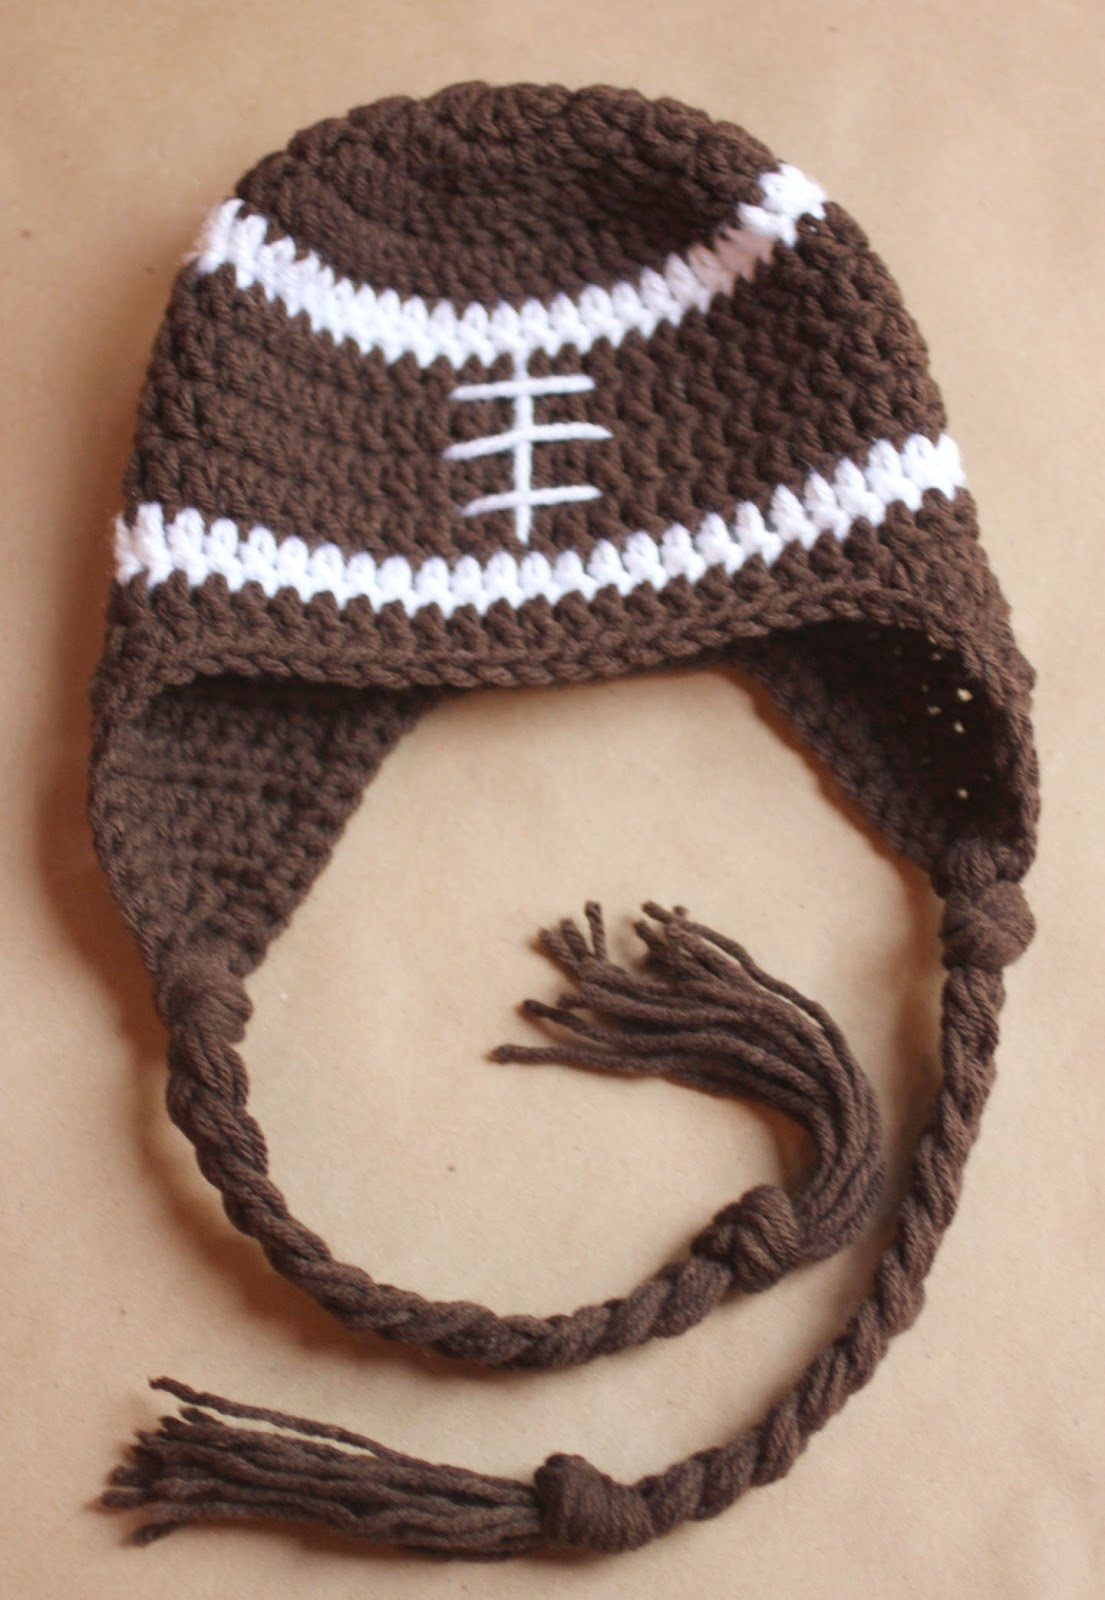 Crochet Beanie Inspirational Crochet Football Earflap Hat Pattern Repeat Crafter Me Of Amazing 44 Images Crochet Beanie